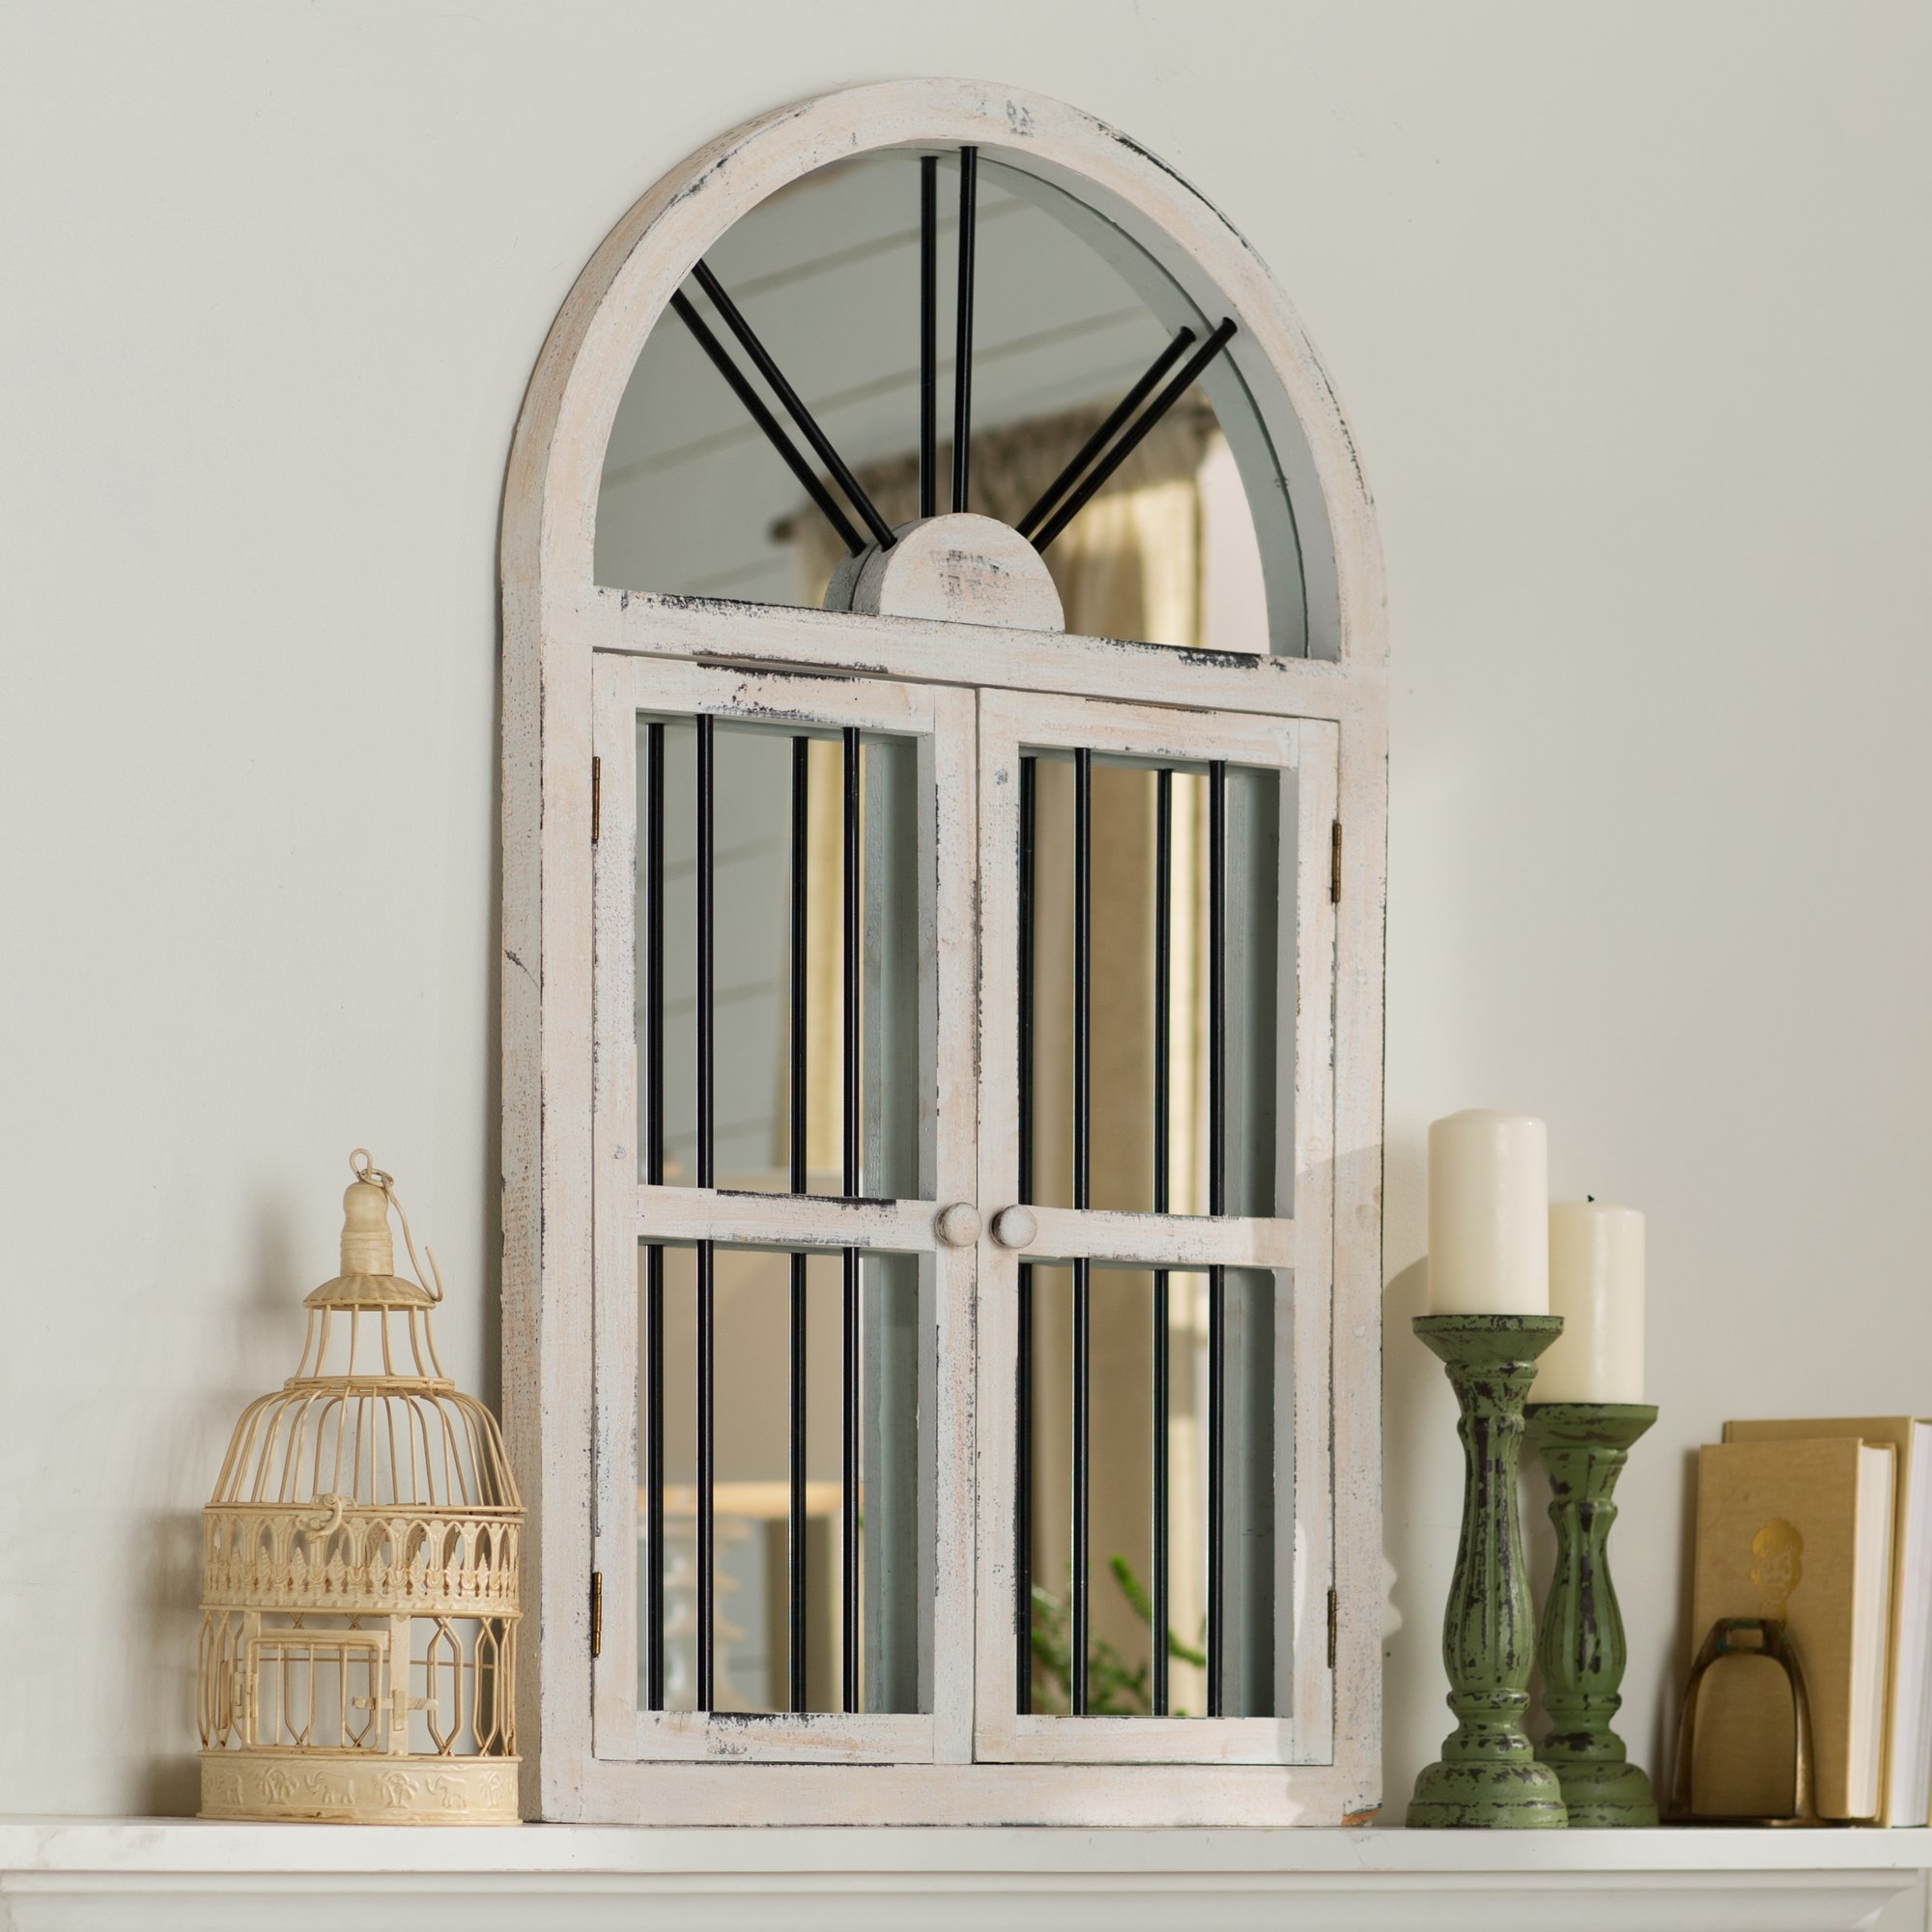 Laurel Foundry Modern Farmhouse Faux Window Wood Wall Mirror In Arched Wall Mirror (View 11 of 15)